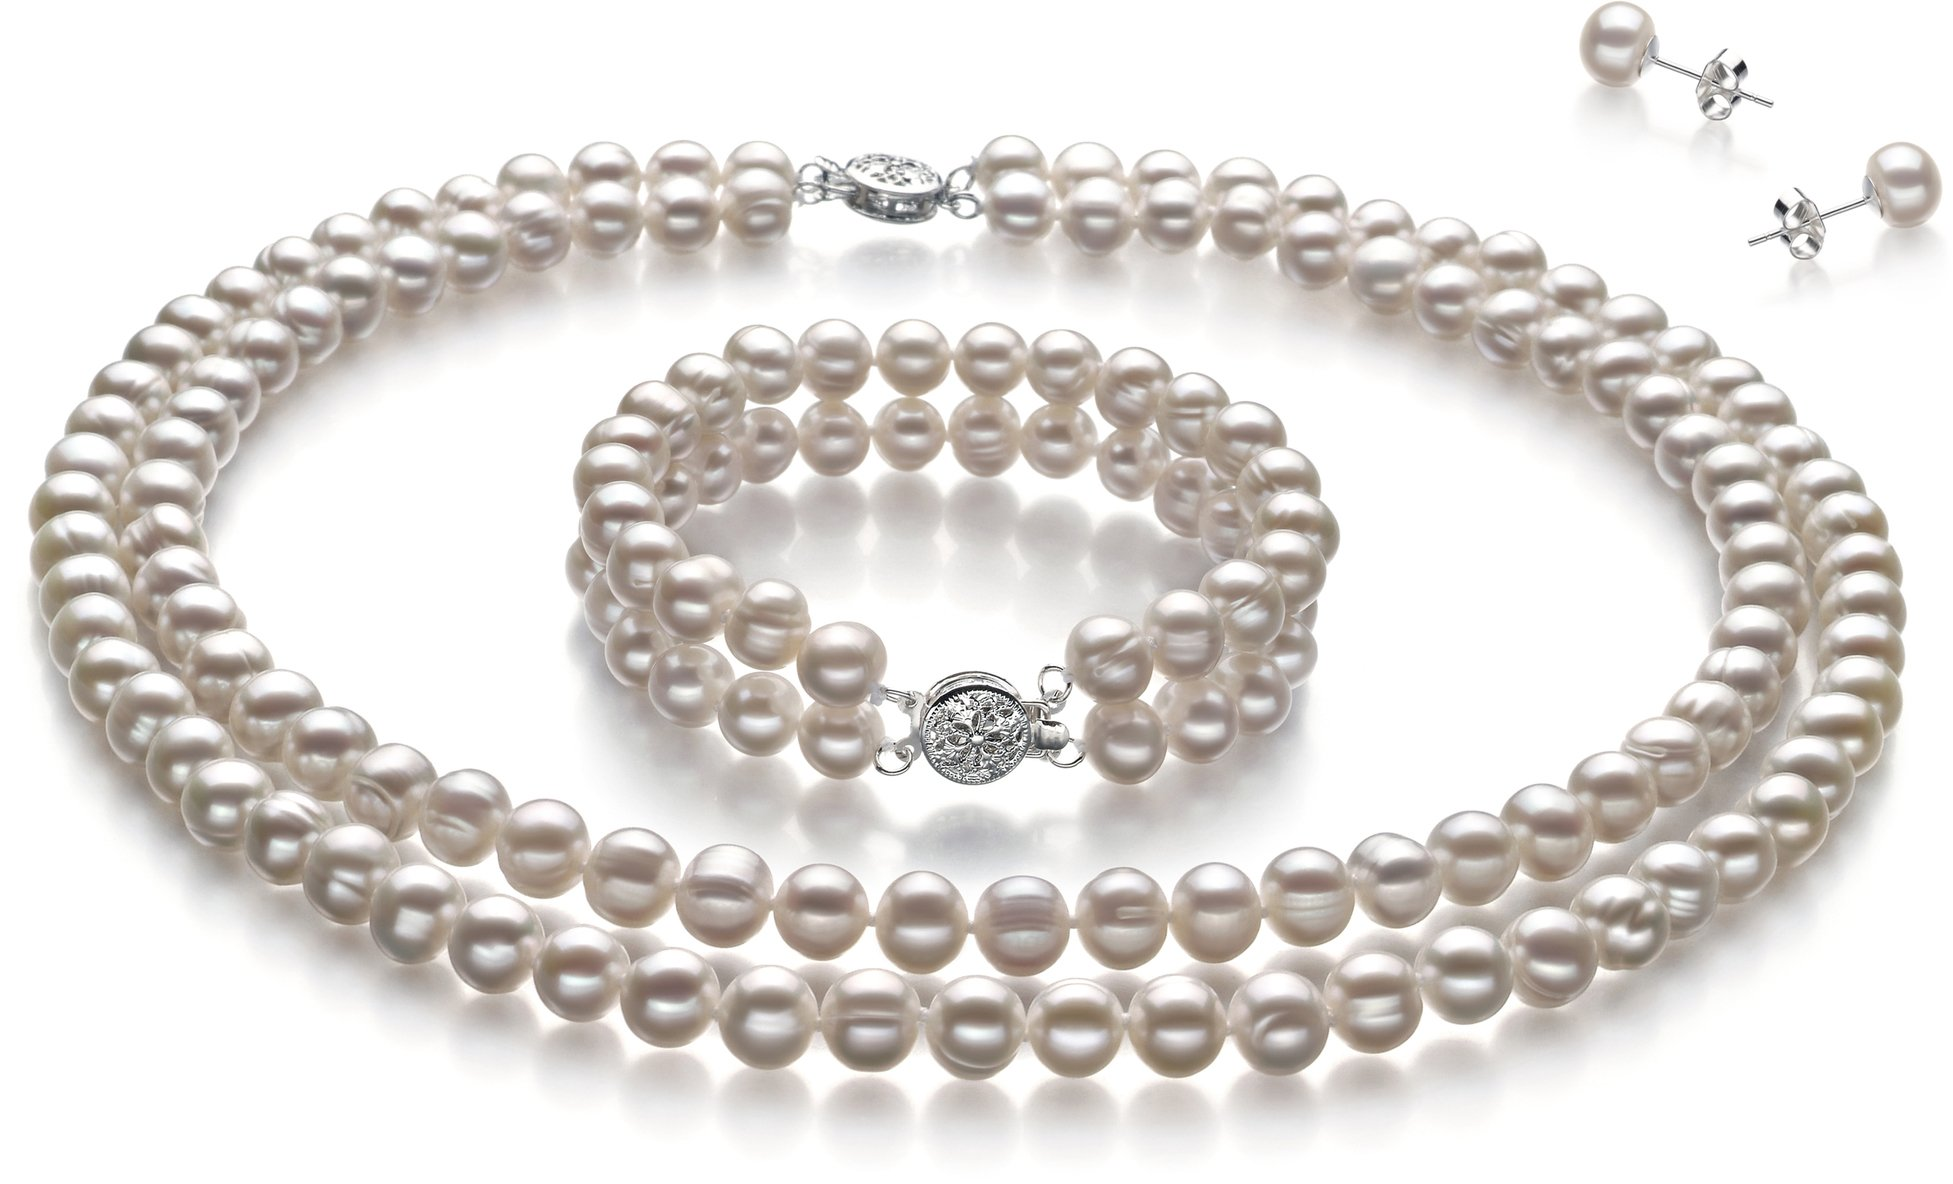 PearlsOnly - White 6-7mm A Quality Freshwater Cultured Pearl Set-16 in Chocker length by PearlsOnly (Image #1)